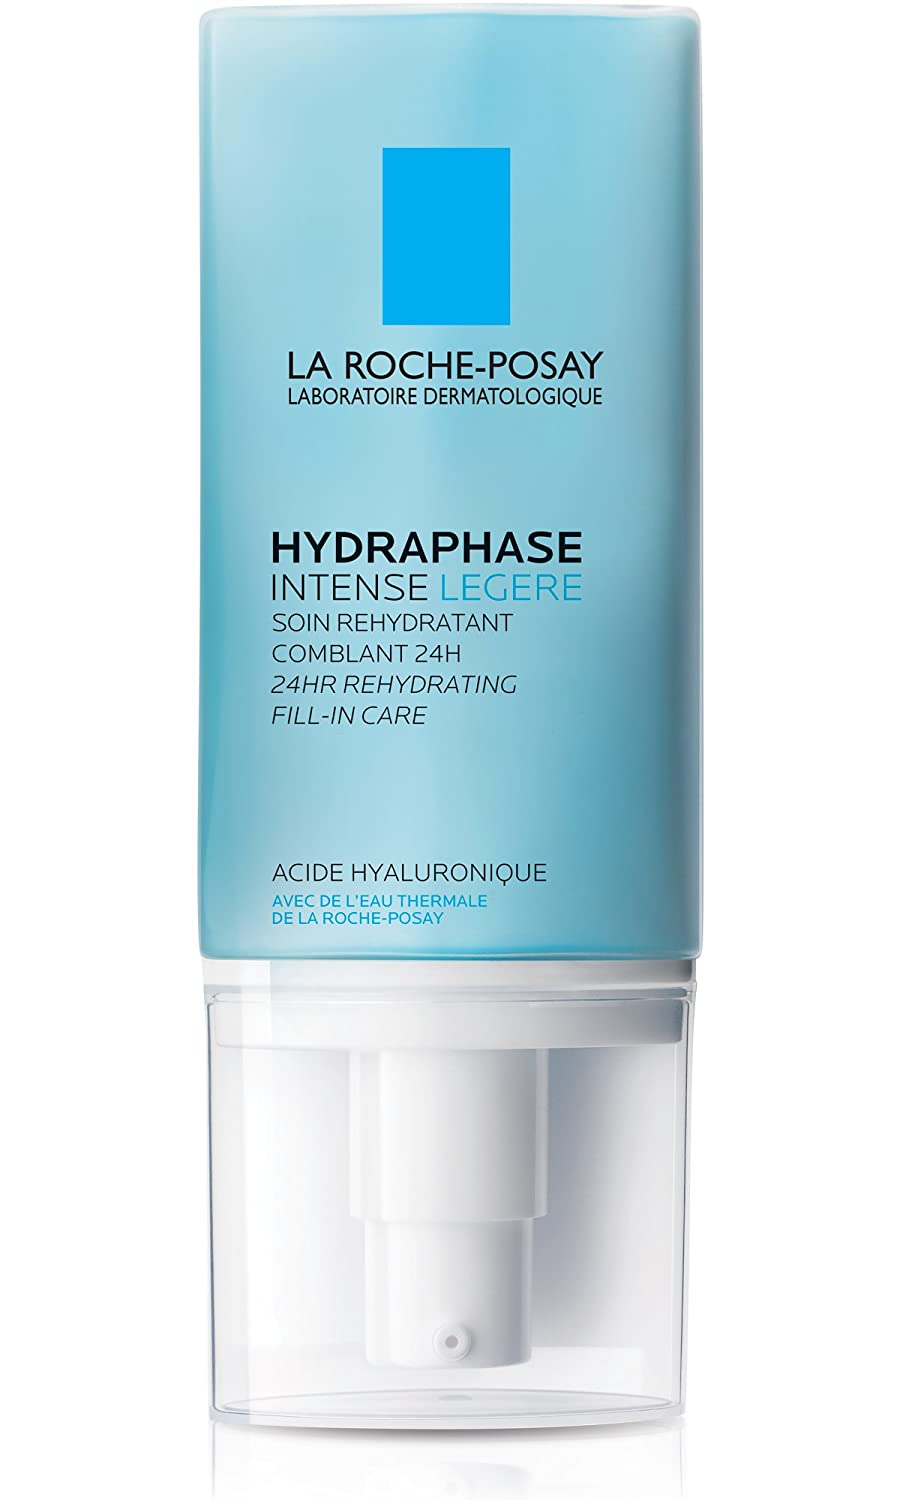 La Roche-posay Hydraphase Intense Intensive Rehydrating Care Moisturizer, 1.69 Fluid Ounce M10640